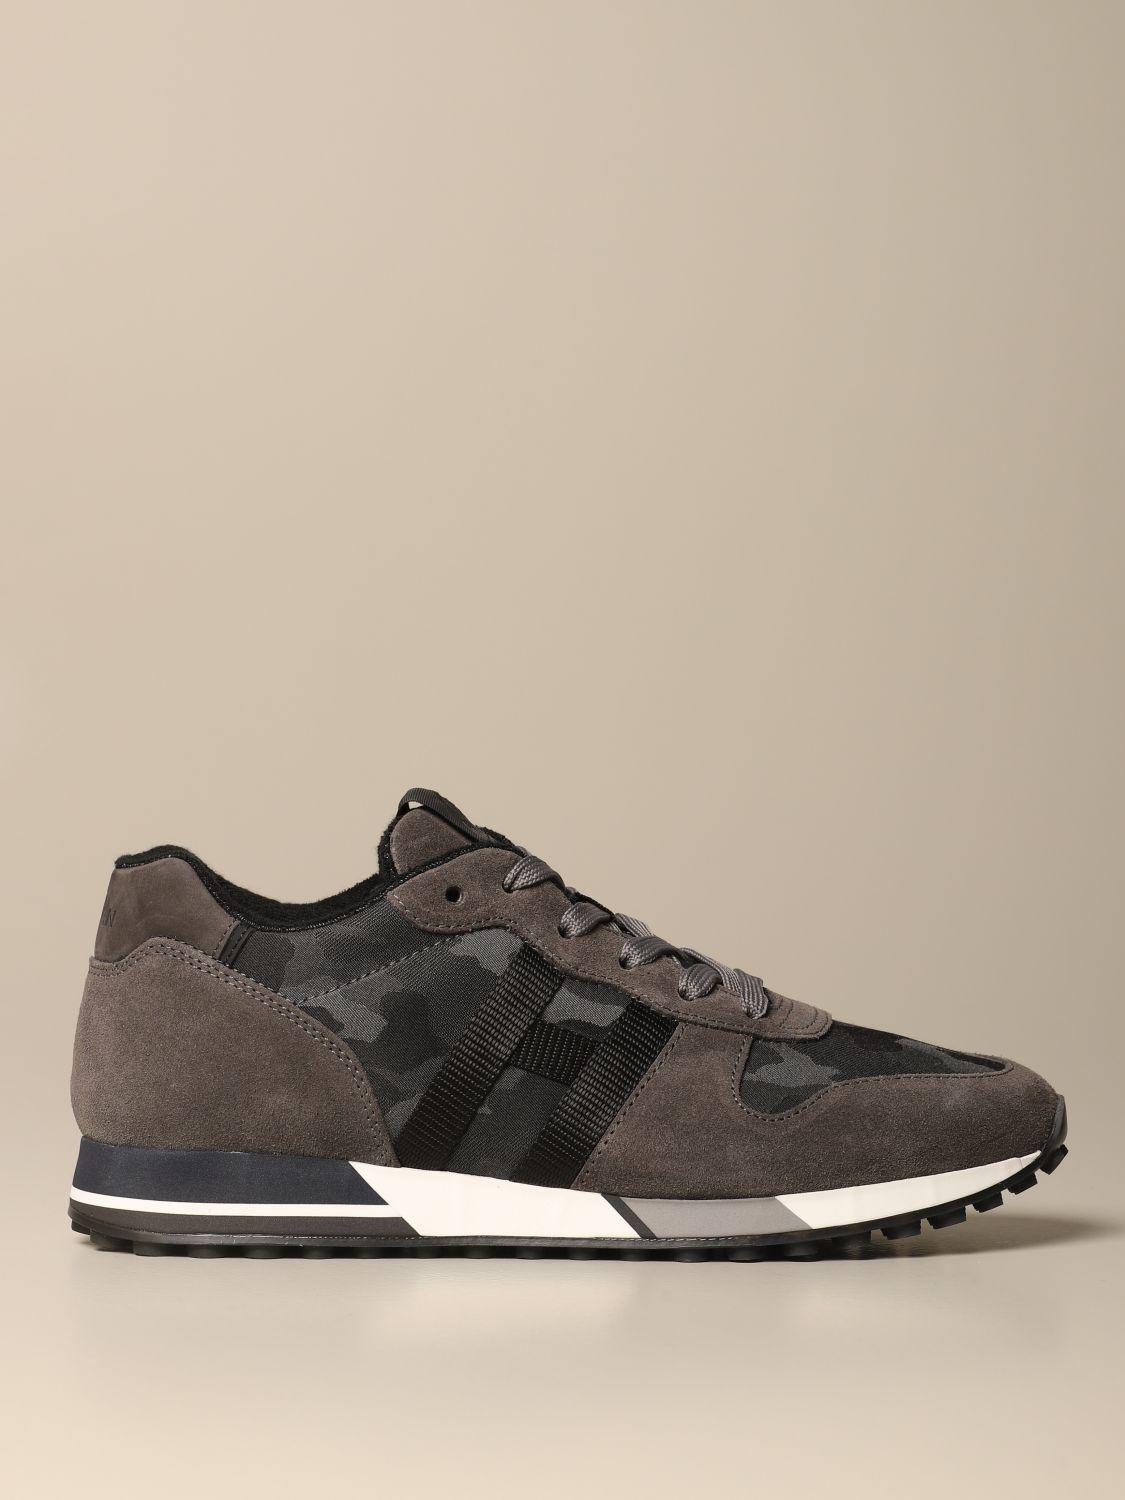 H383 running Hogan suede sneakers with stitched H